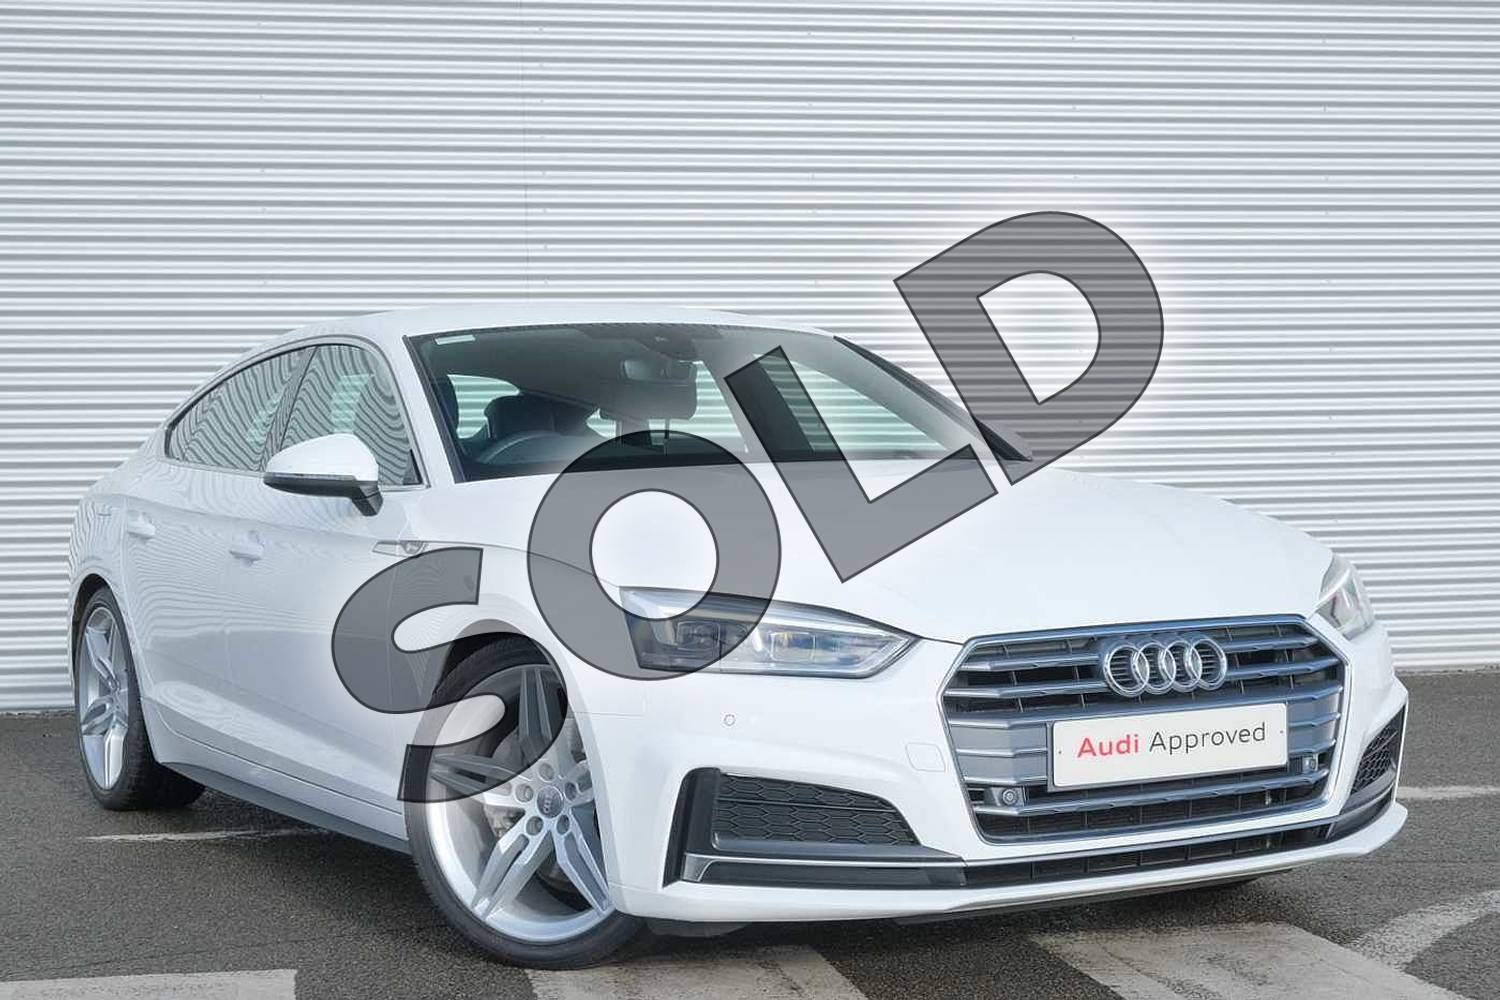 2018 Audi A5 Diesel Sportback 40 TDI S Line 5dr S Tronic in Ibis White at Coventry Audi